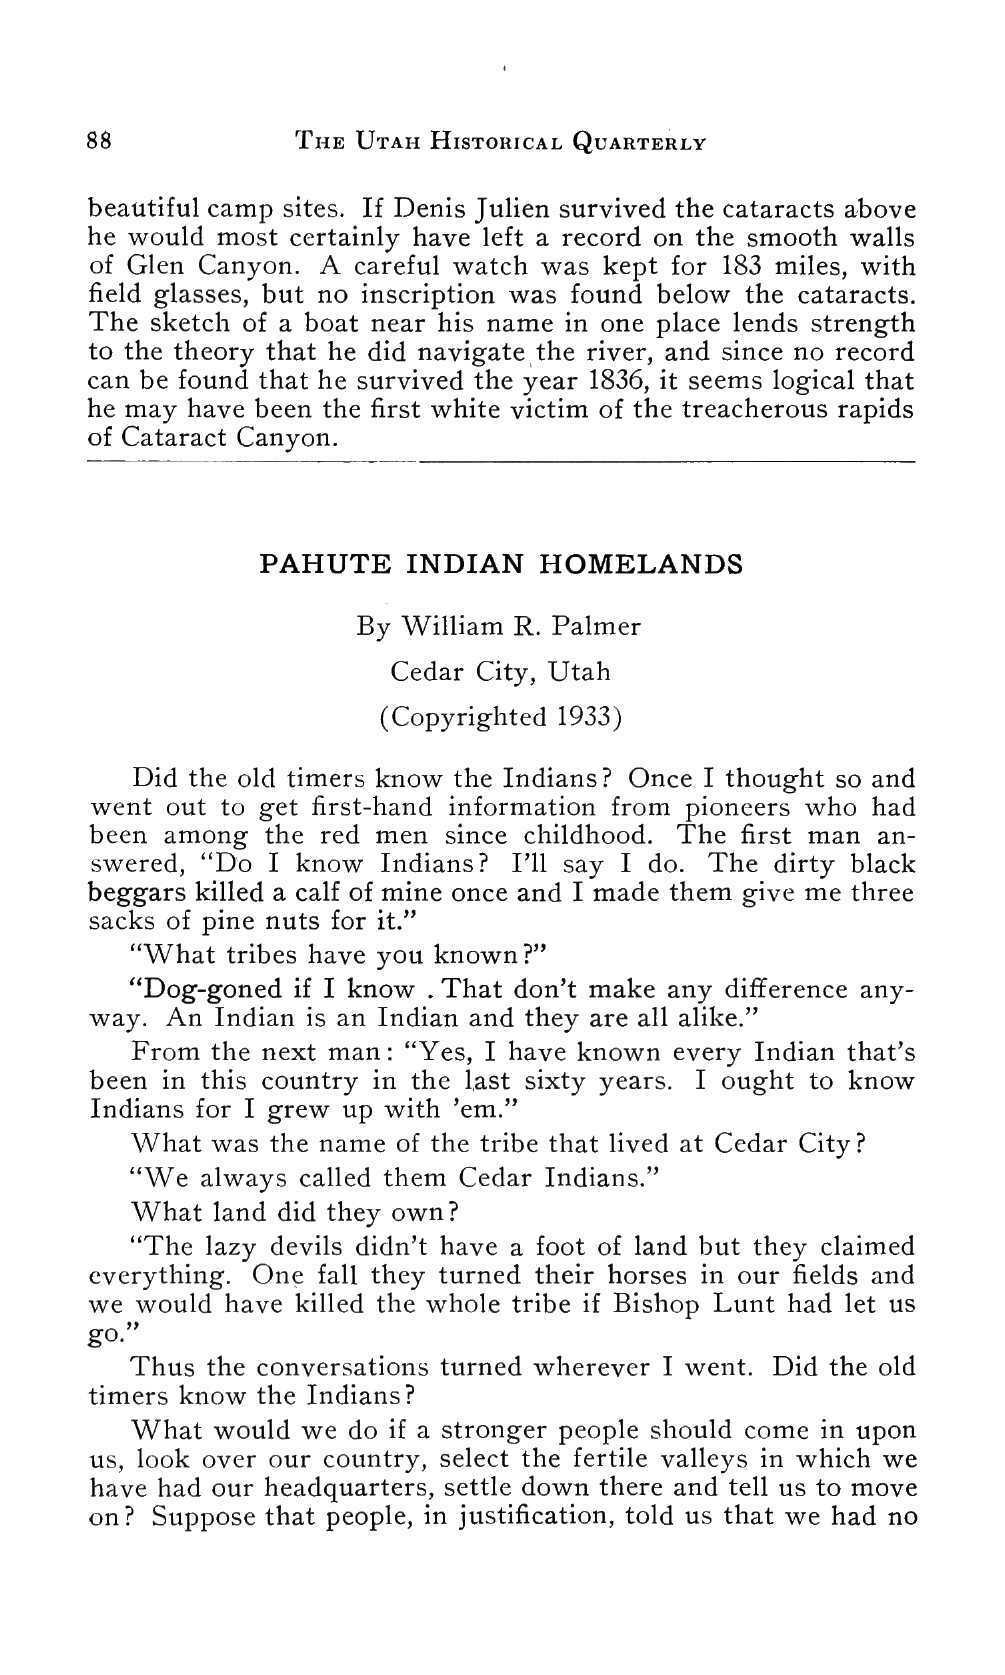 Page 88 of Pahute Indian Homelands